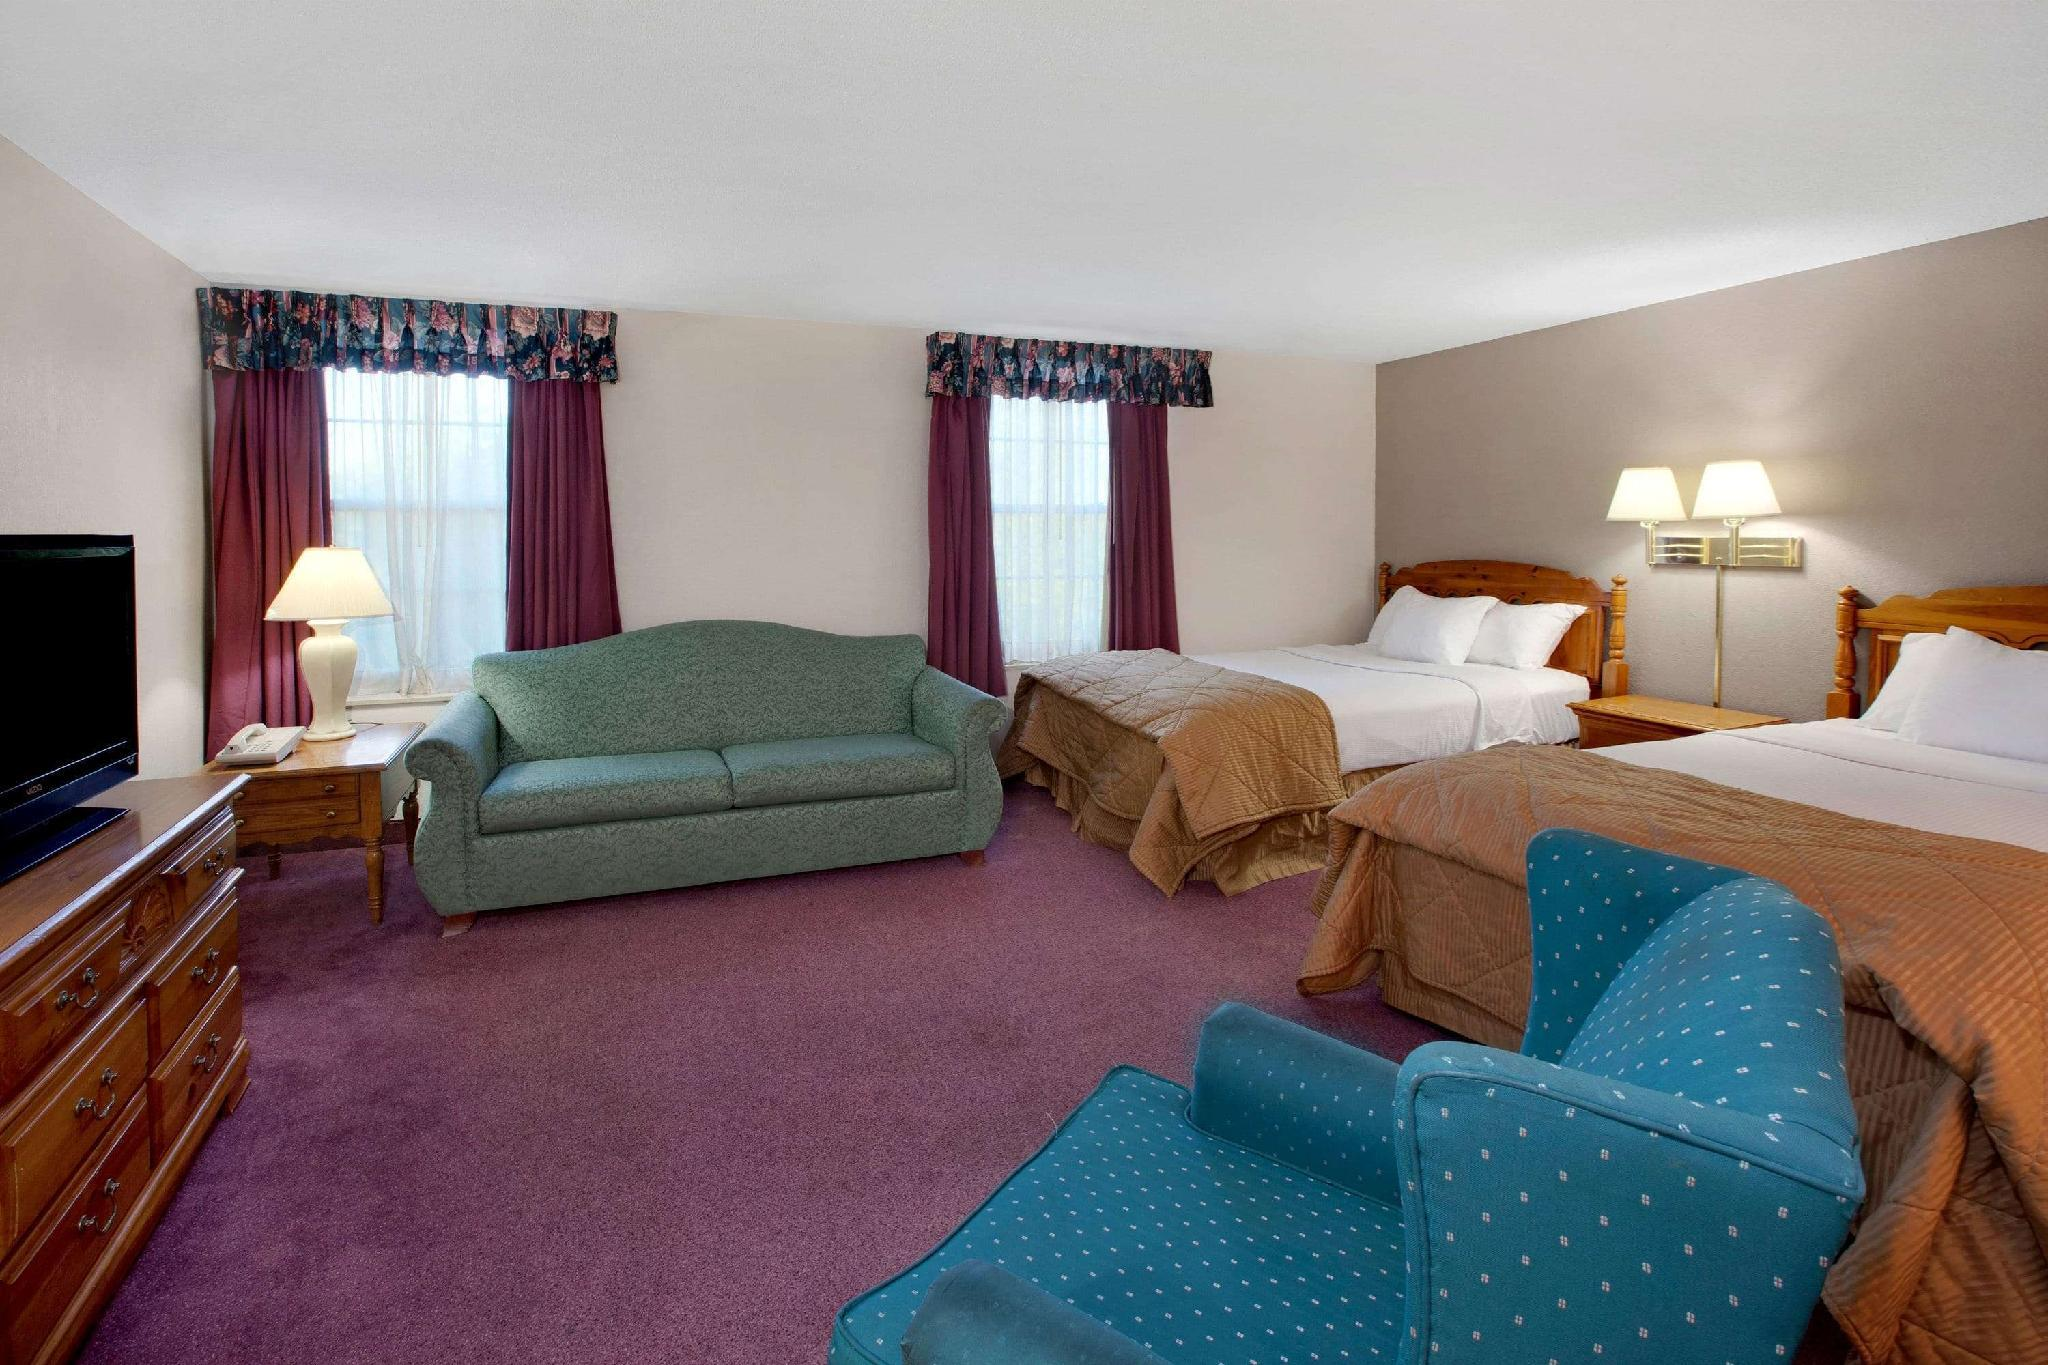 Ramada Plaza By Wyndham Sault Ste Marie Ojibway Hotel Sault Ste Marie Mi Deals Photos Reviews